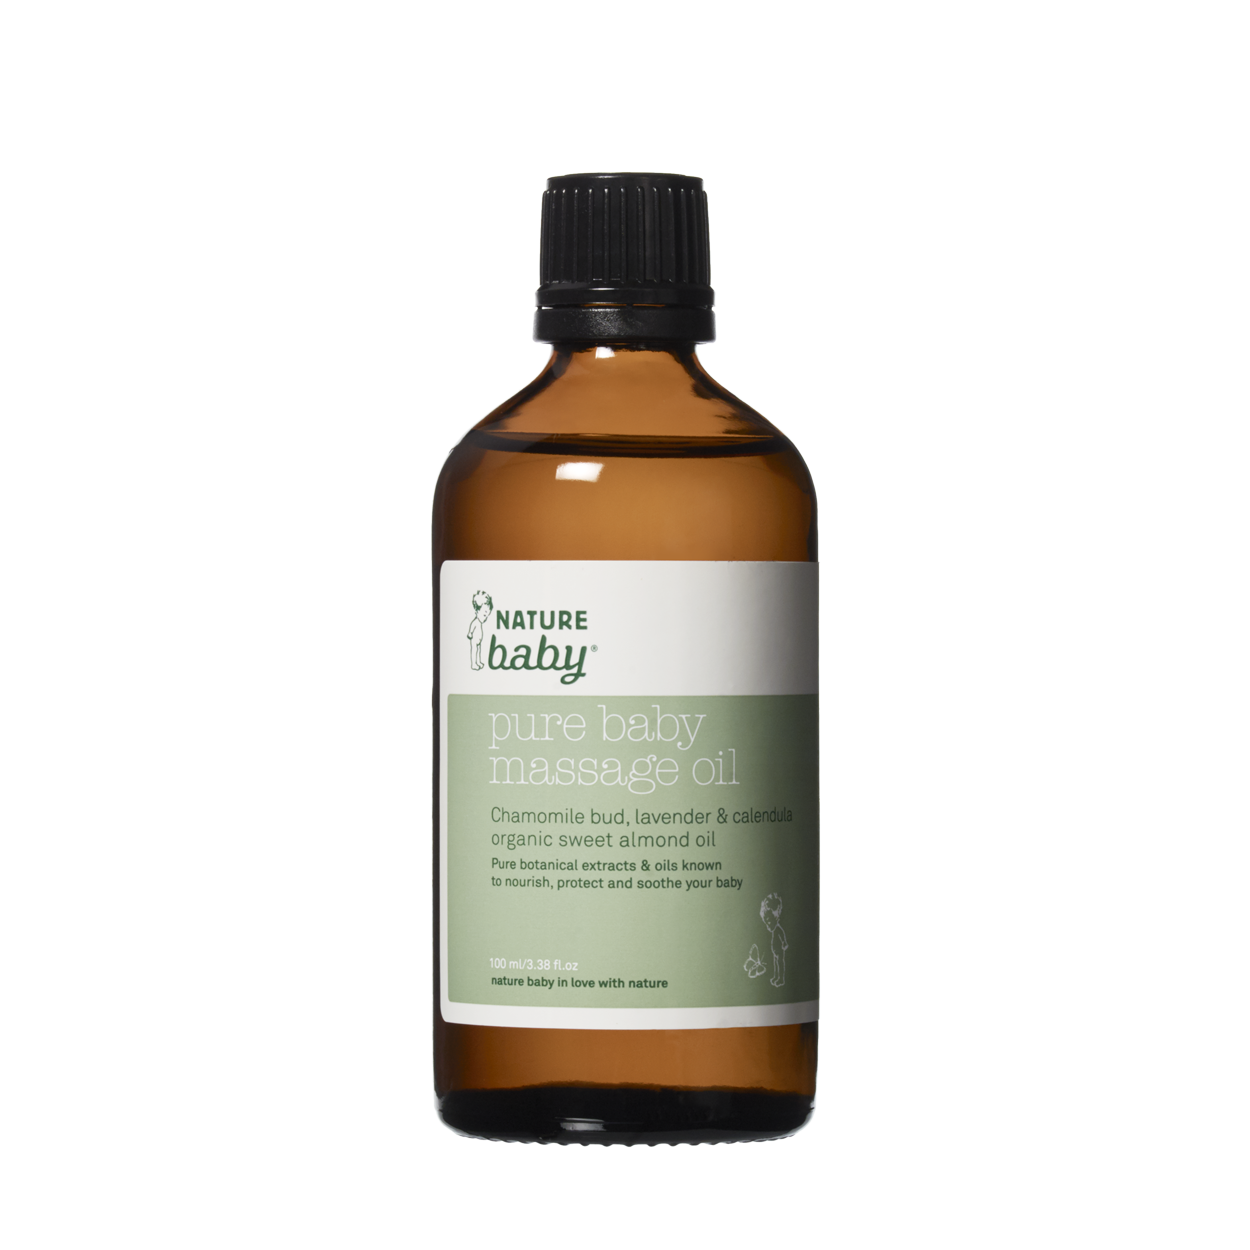 Pure Baby Massage Oil